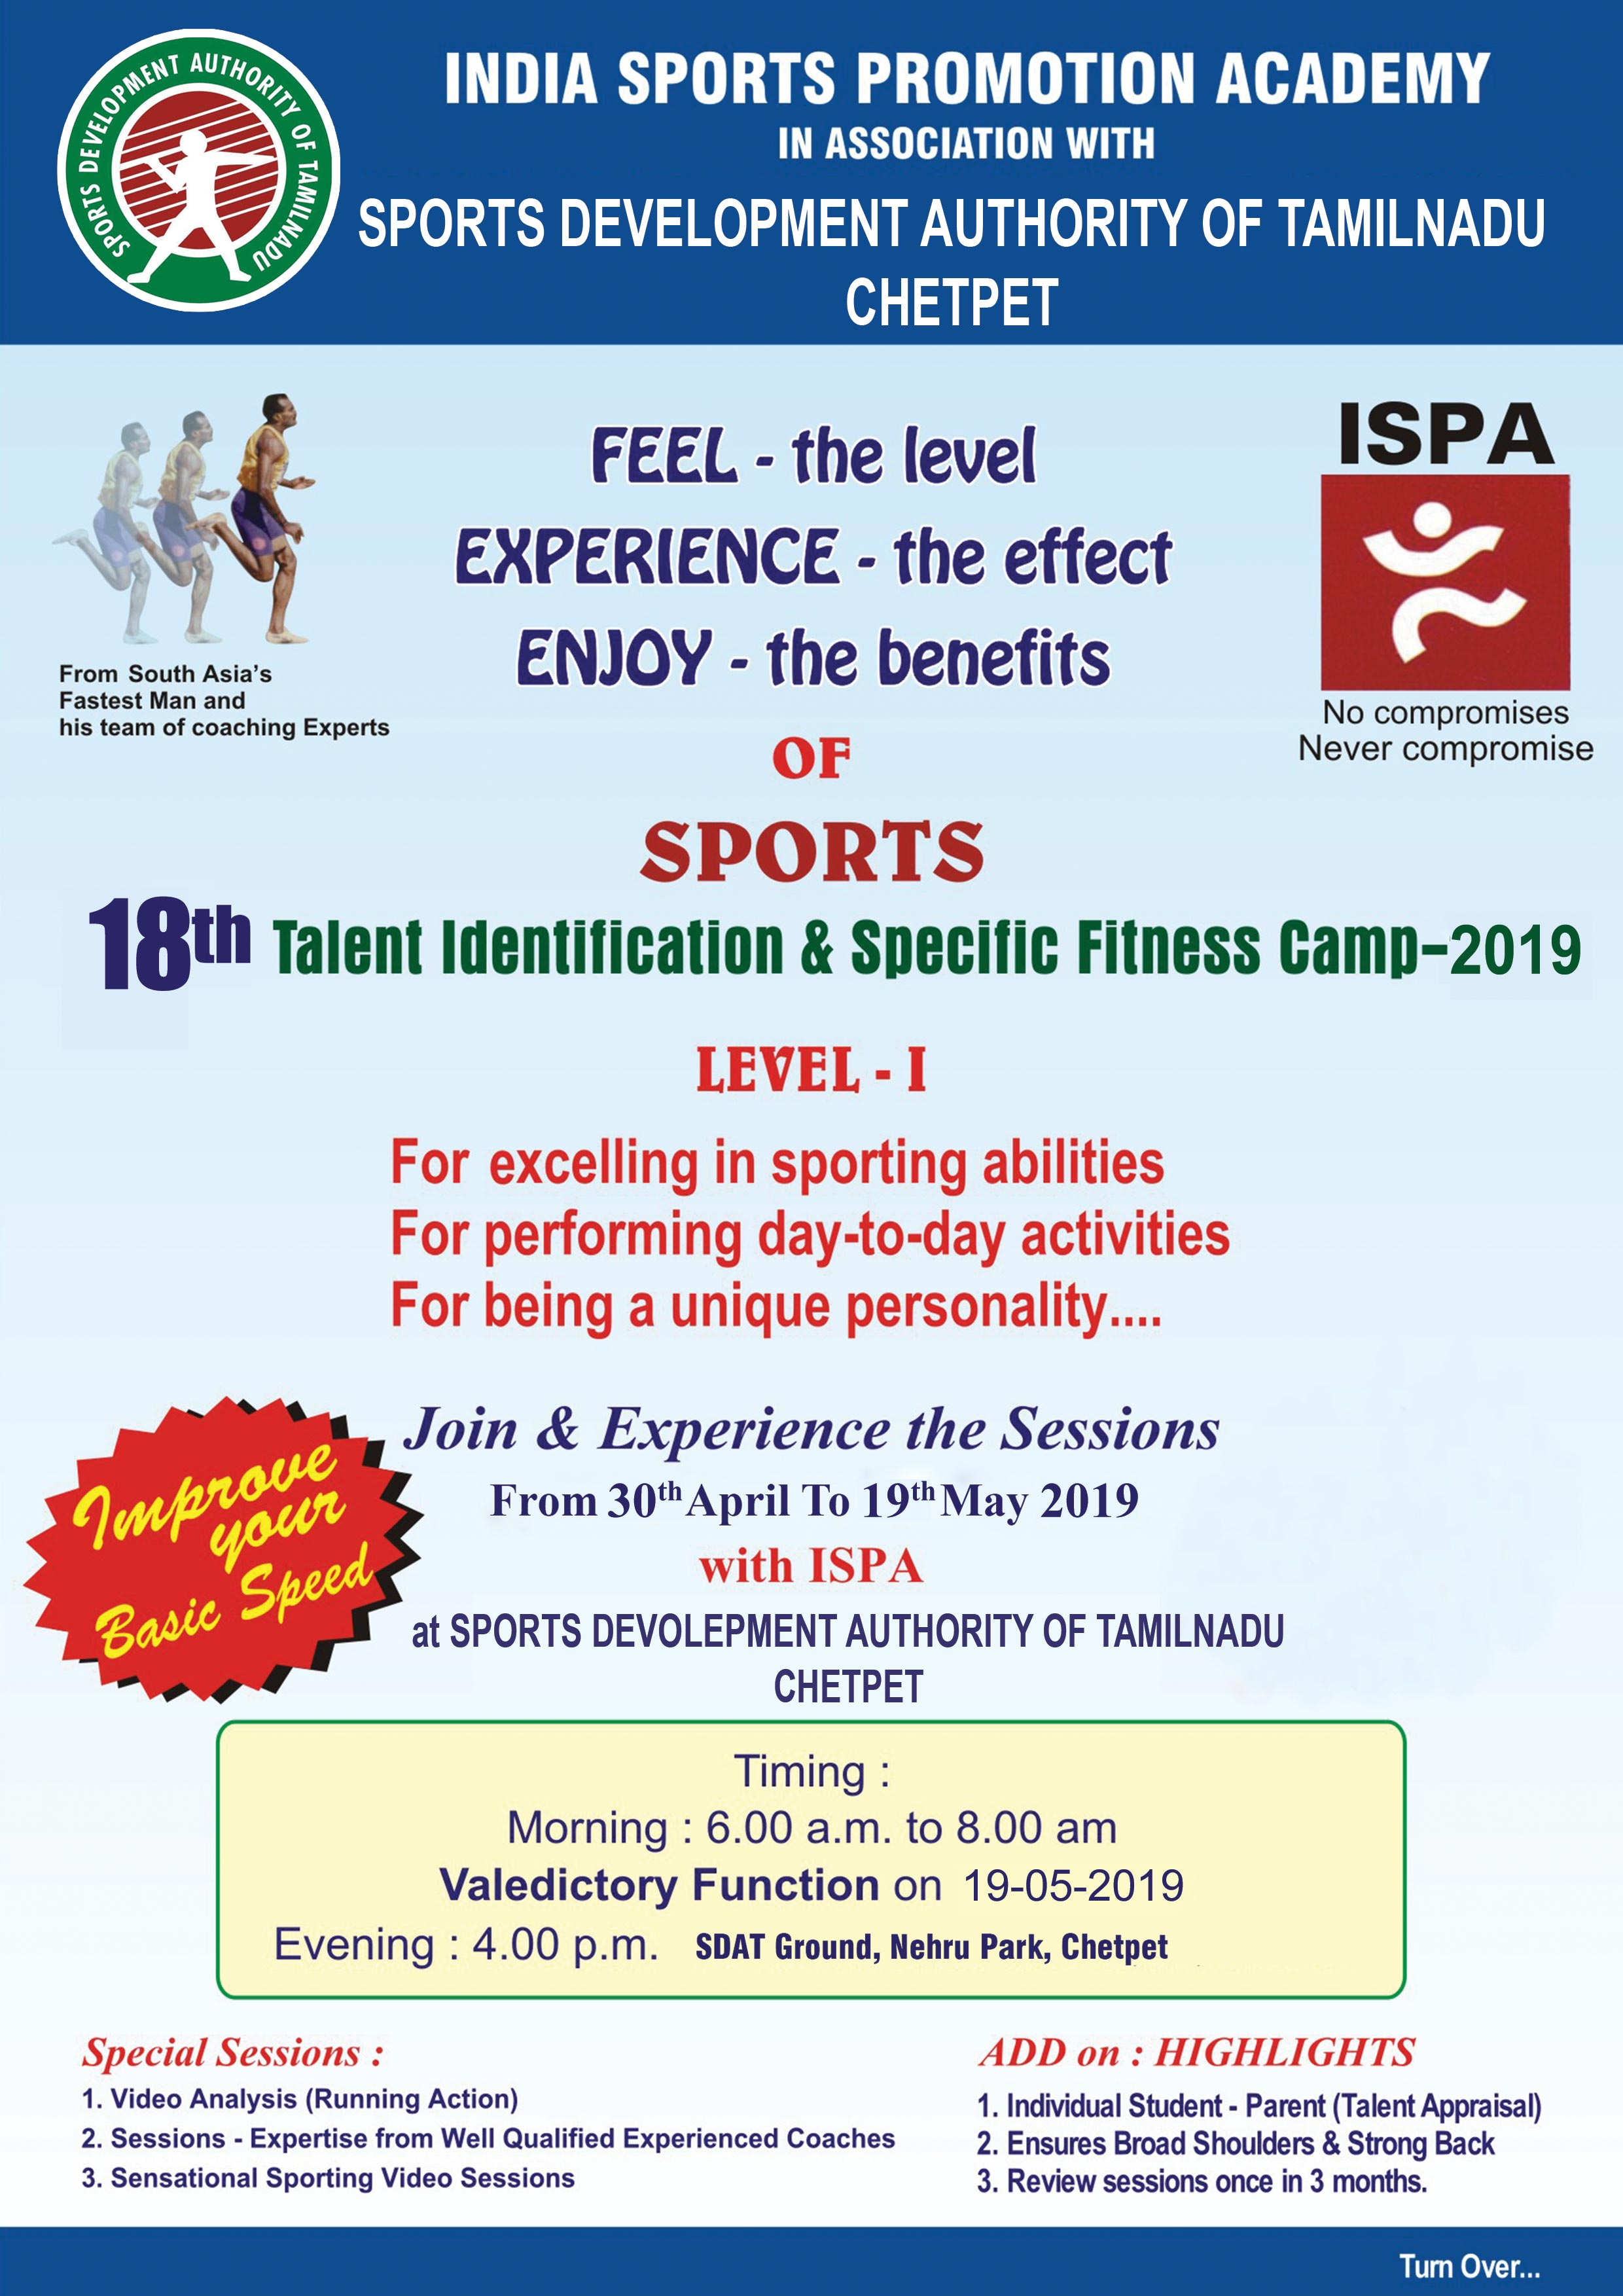 ISPA India Sports Promotion Academy